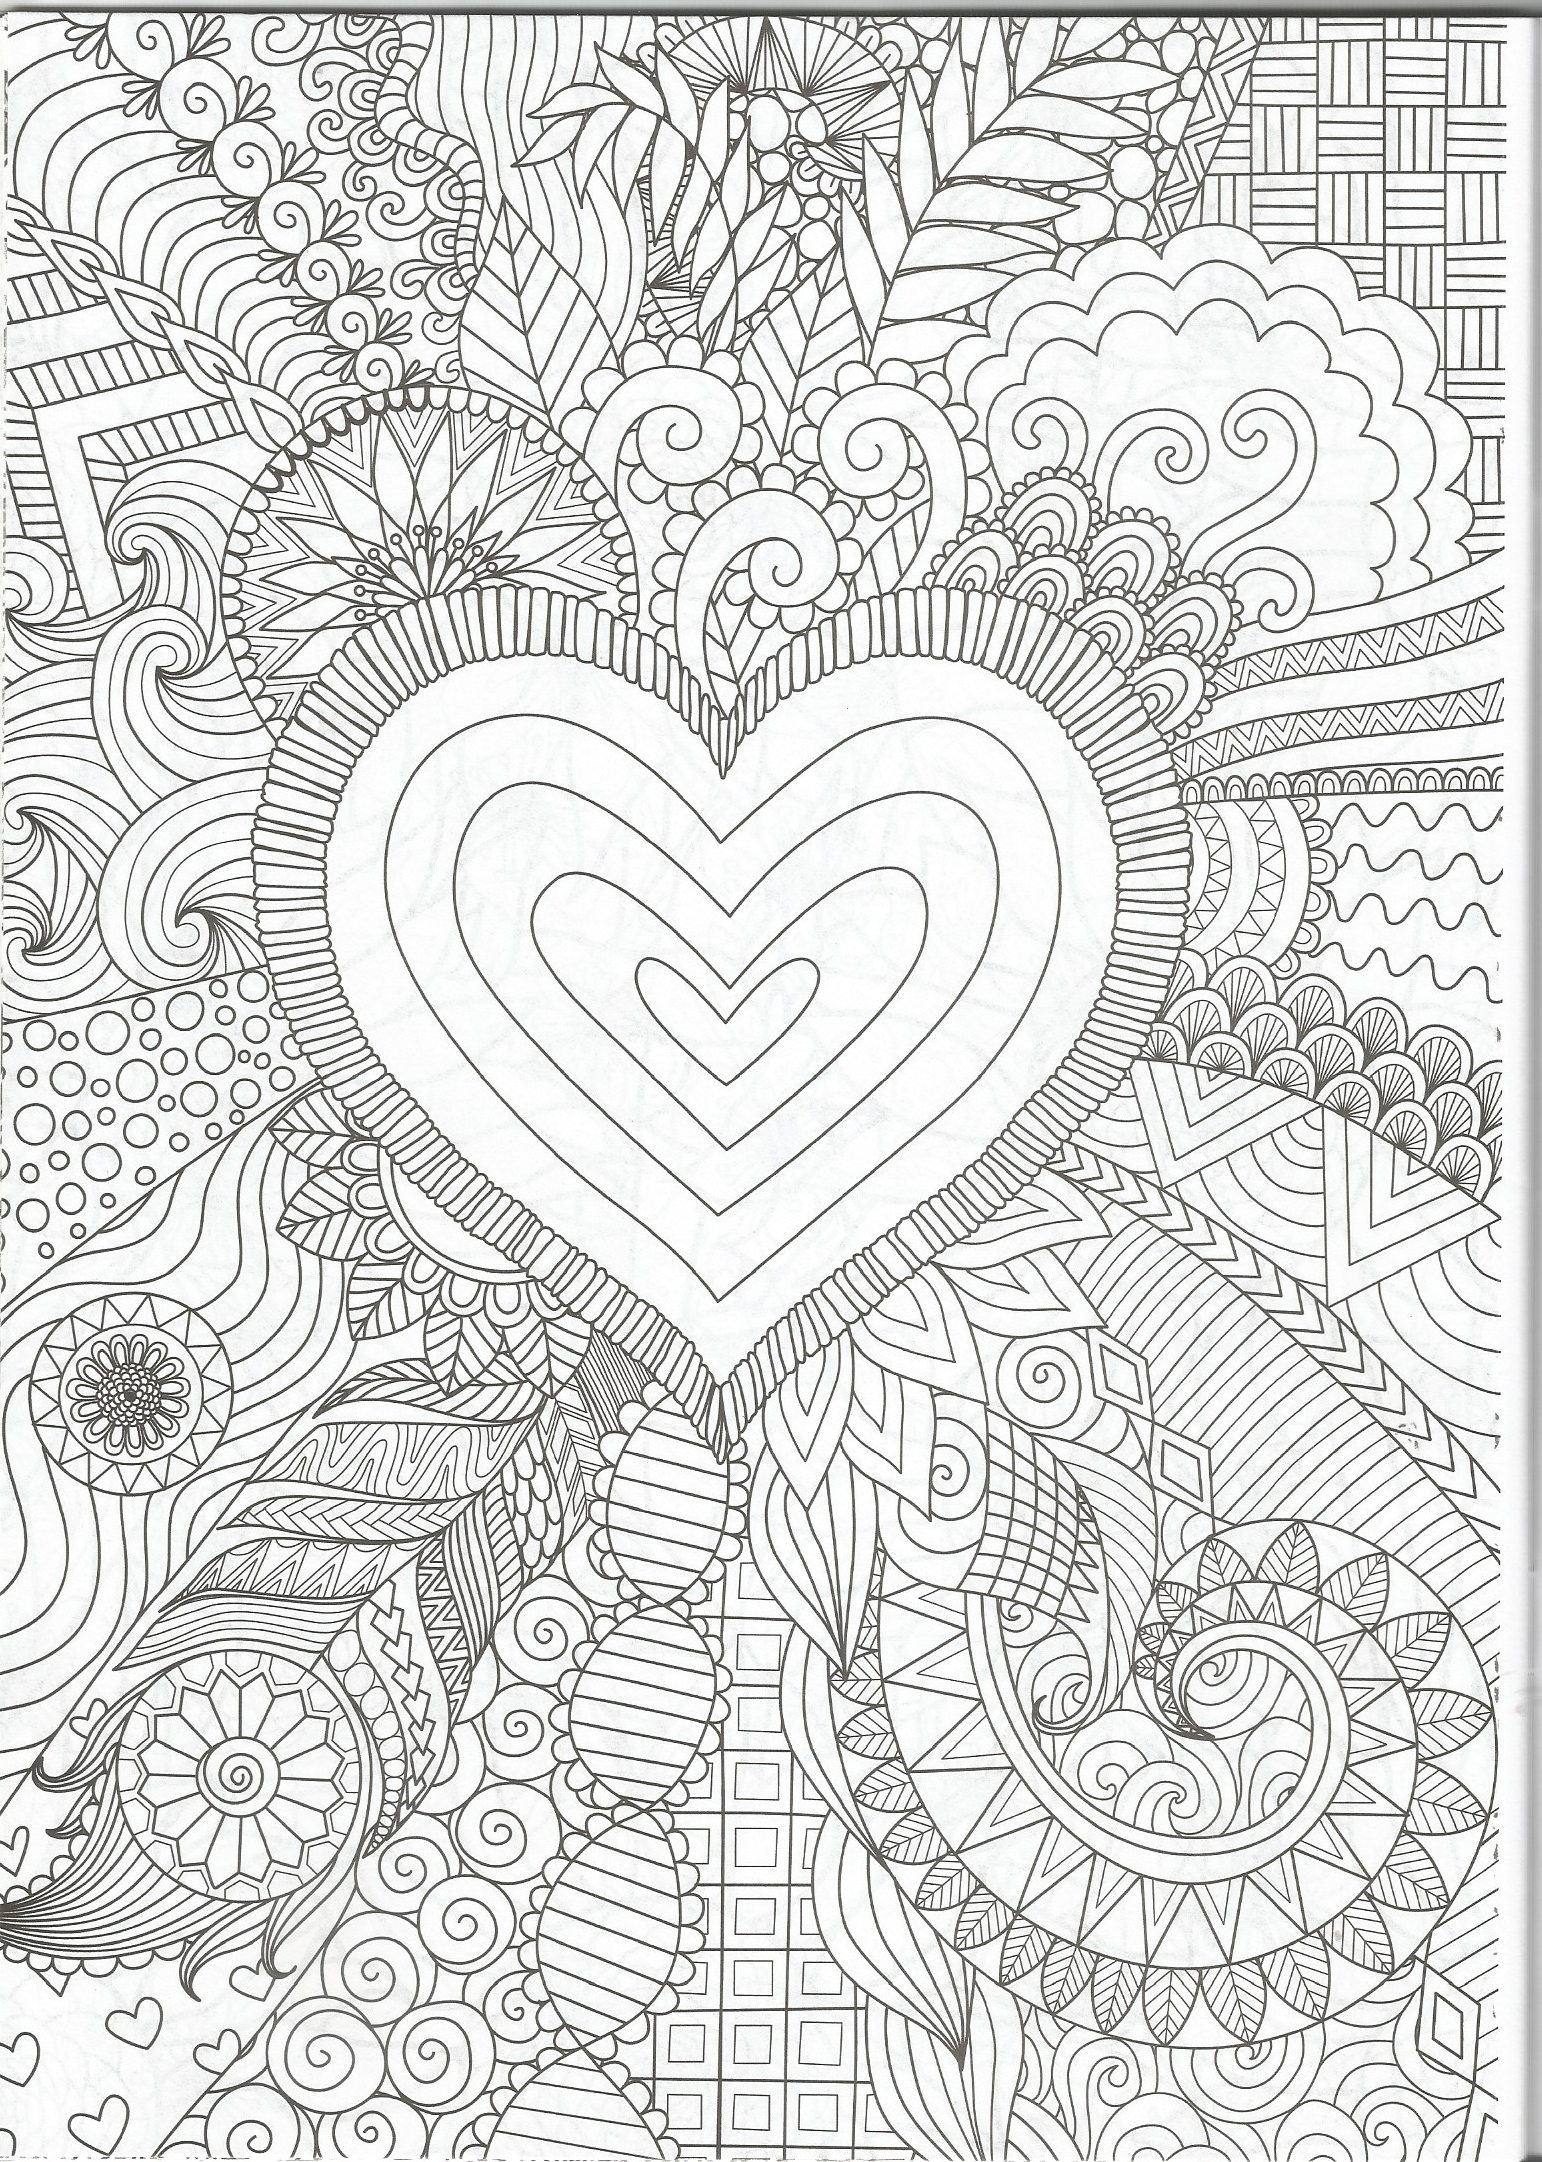 Coloring Page From The Kick Back And Color Floral To Music Volume 3 Coloring Book Love Coloring Pages Heart Coloring Pages Abstract Line Art